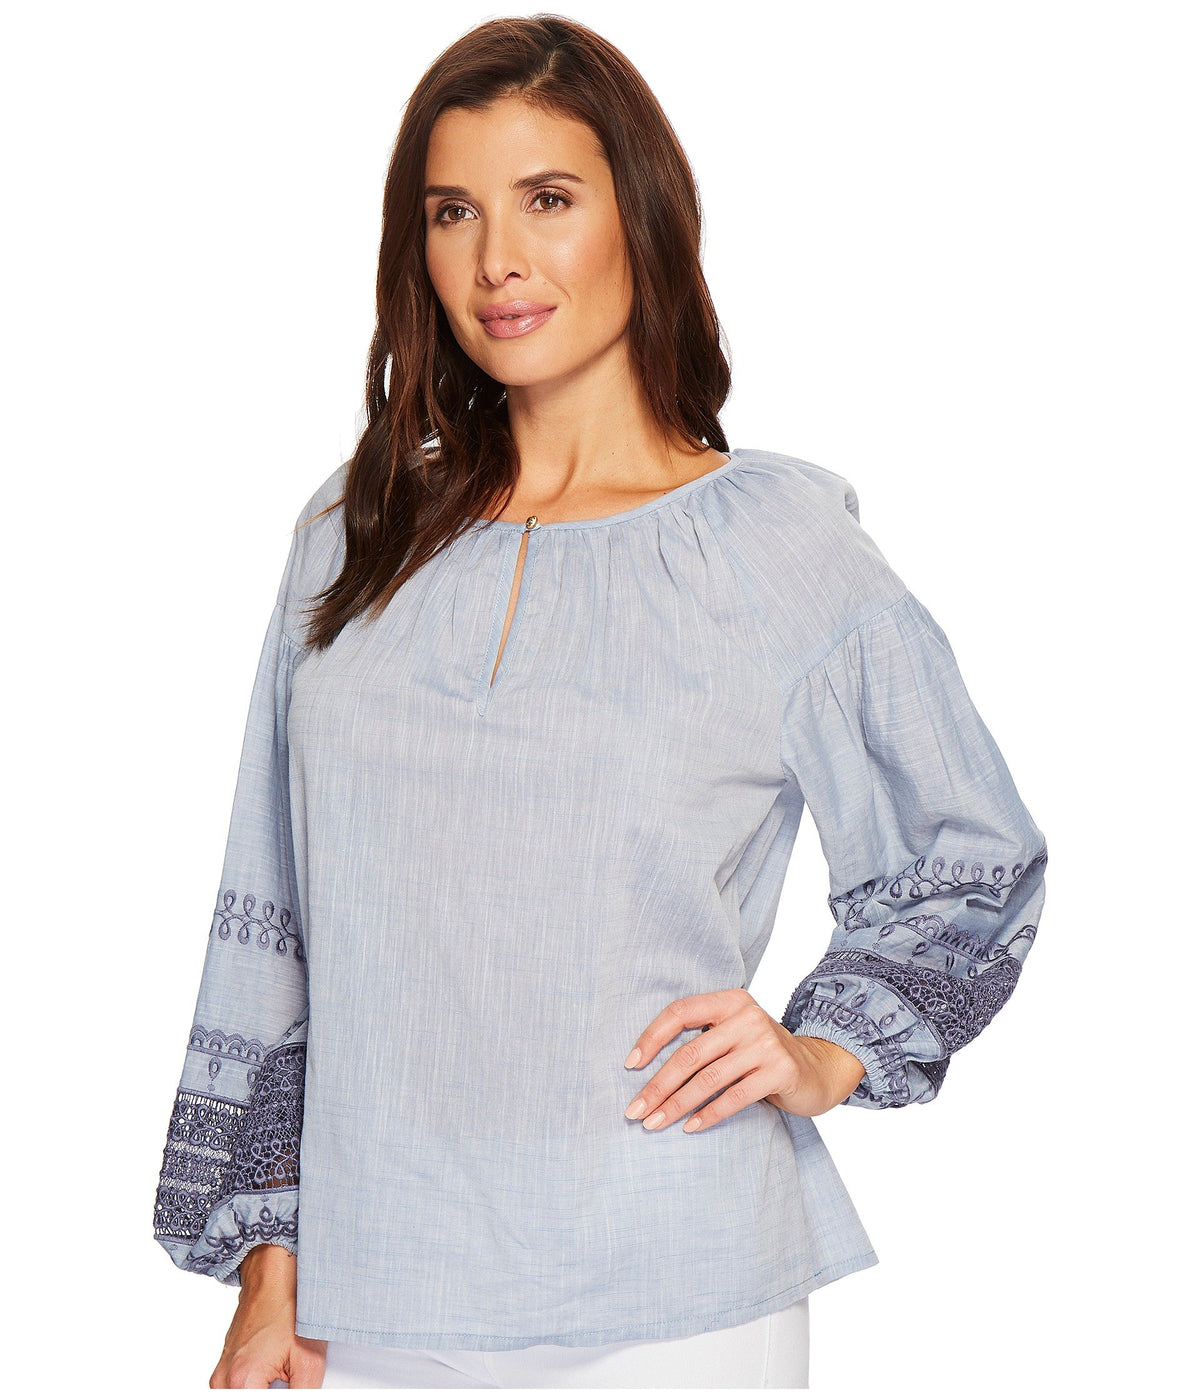 Balloon Sleeve Top with Eyelet Detail